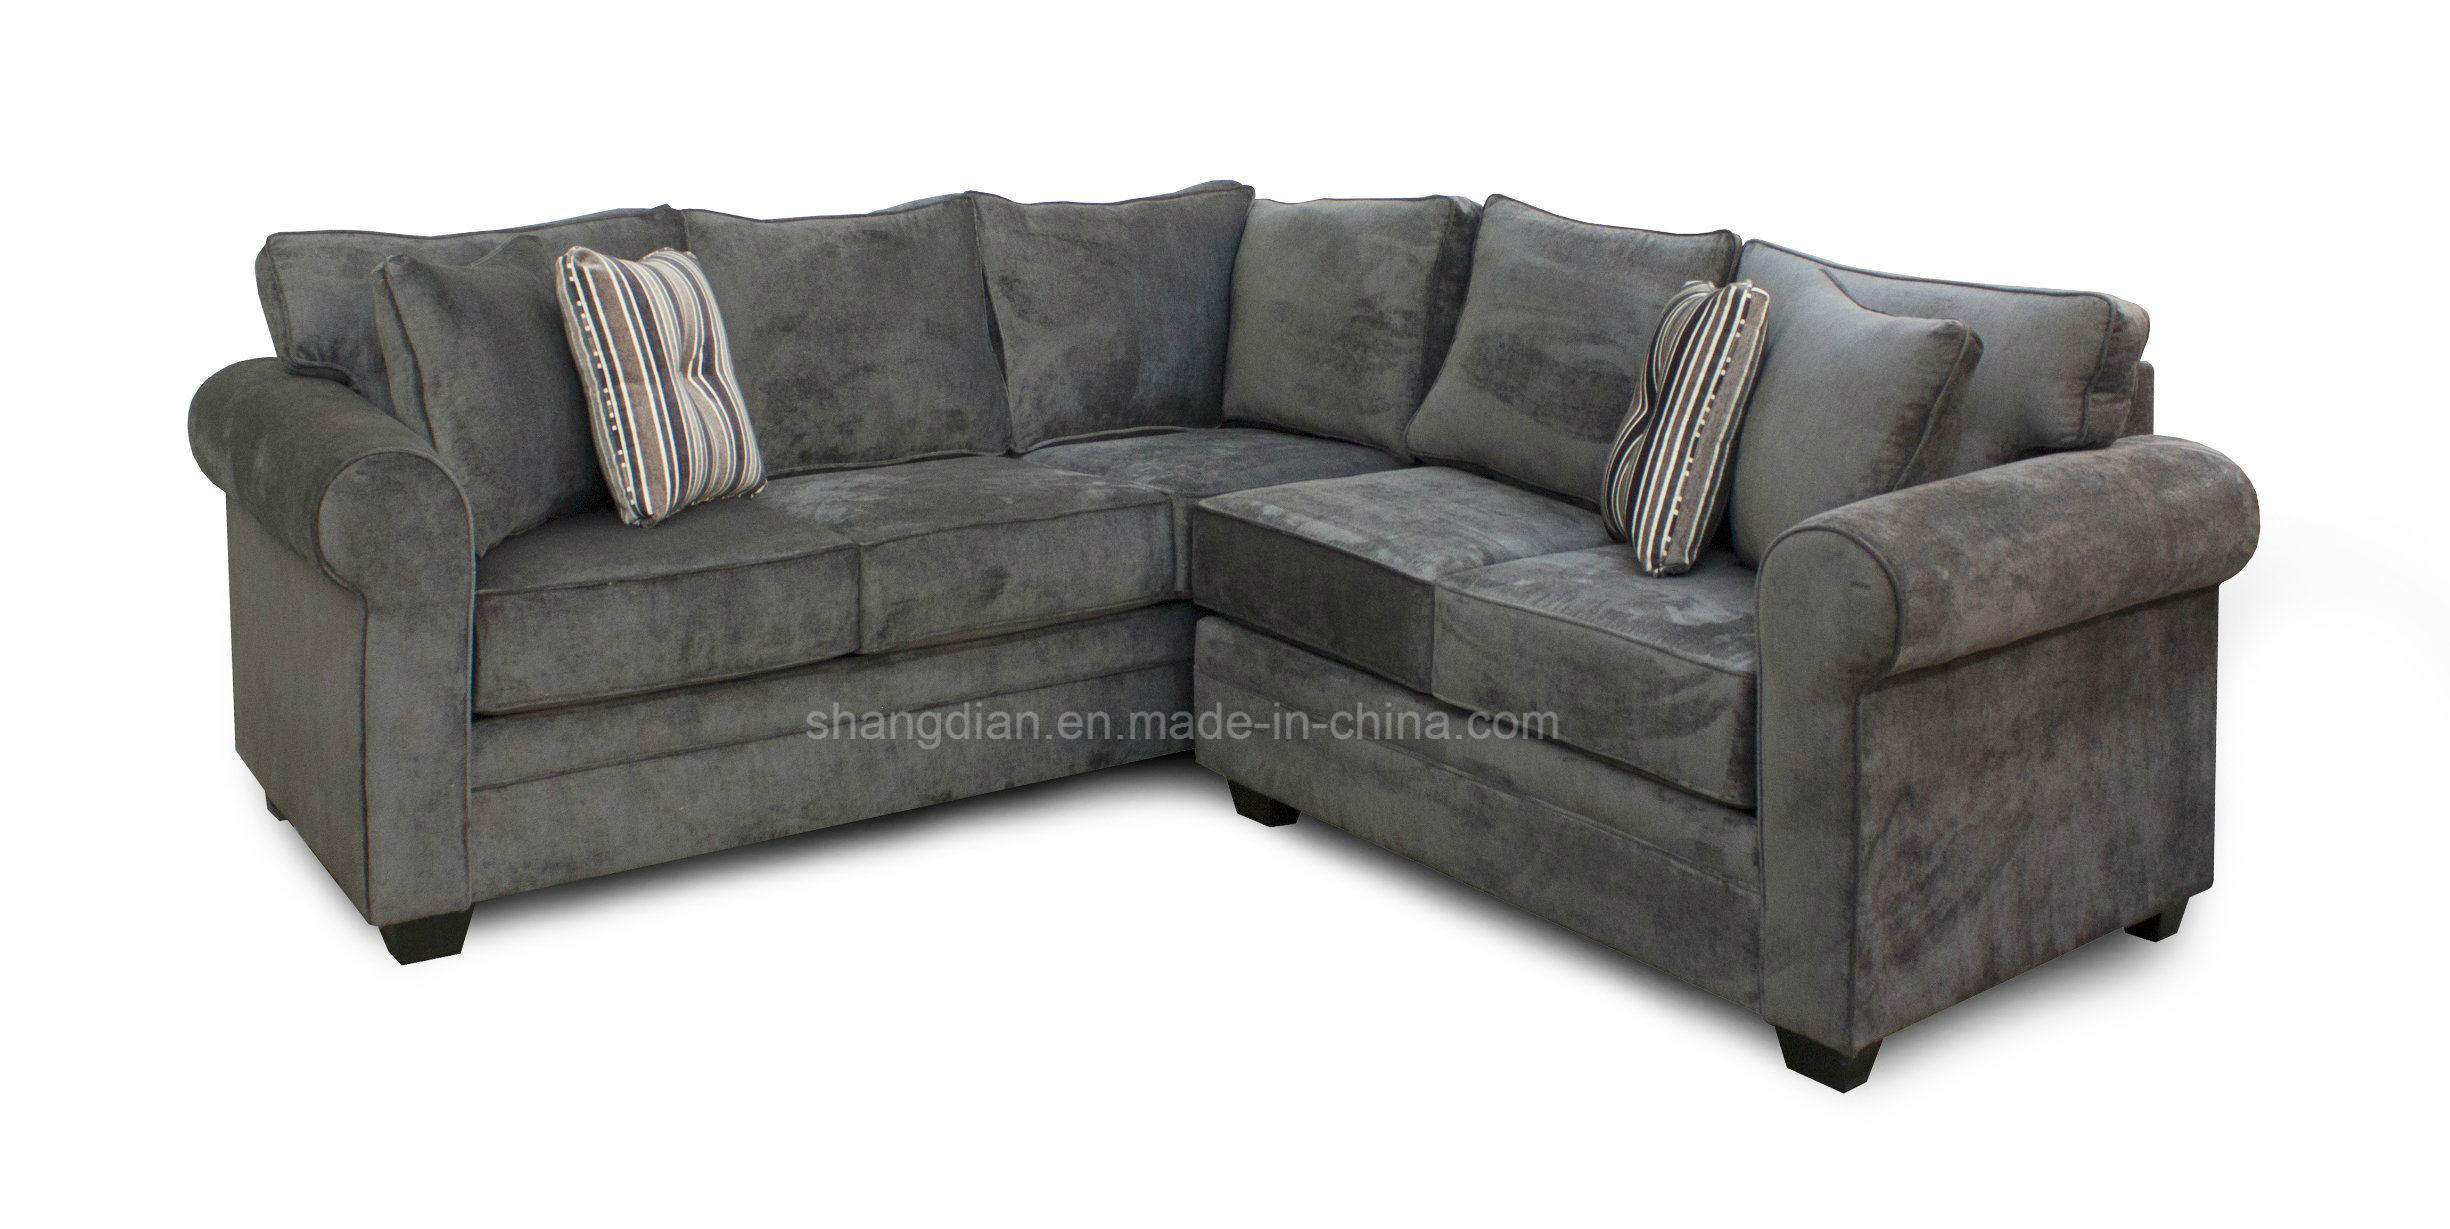 Marvelous Hot Item Import Furniture From China Hotel Furniture Sleeper Couch L Shape Sectional Sofa Kl S04 Ncnpc Chair Design For Home Ncnpcorg